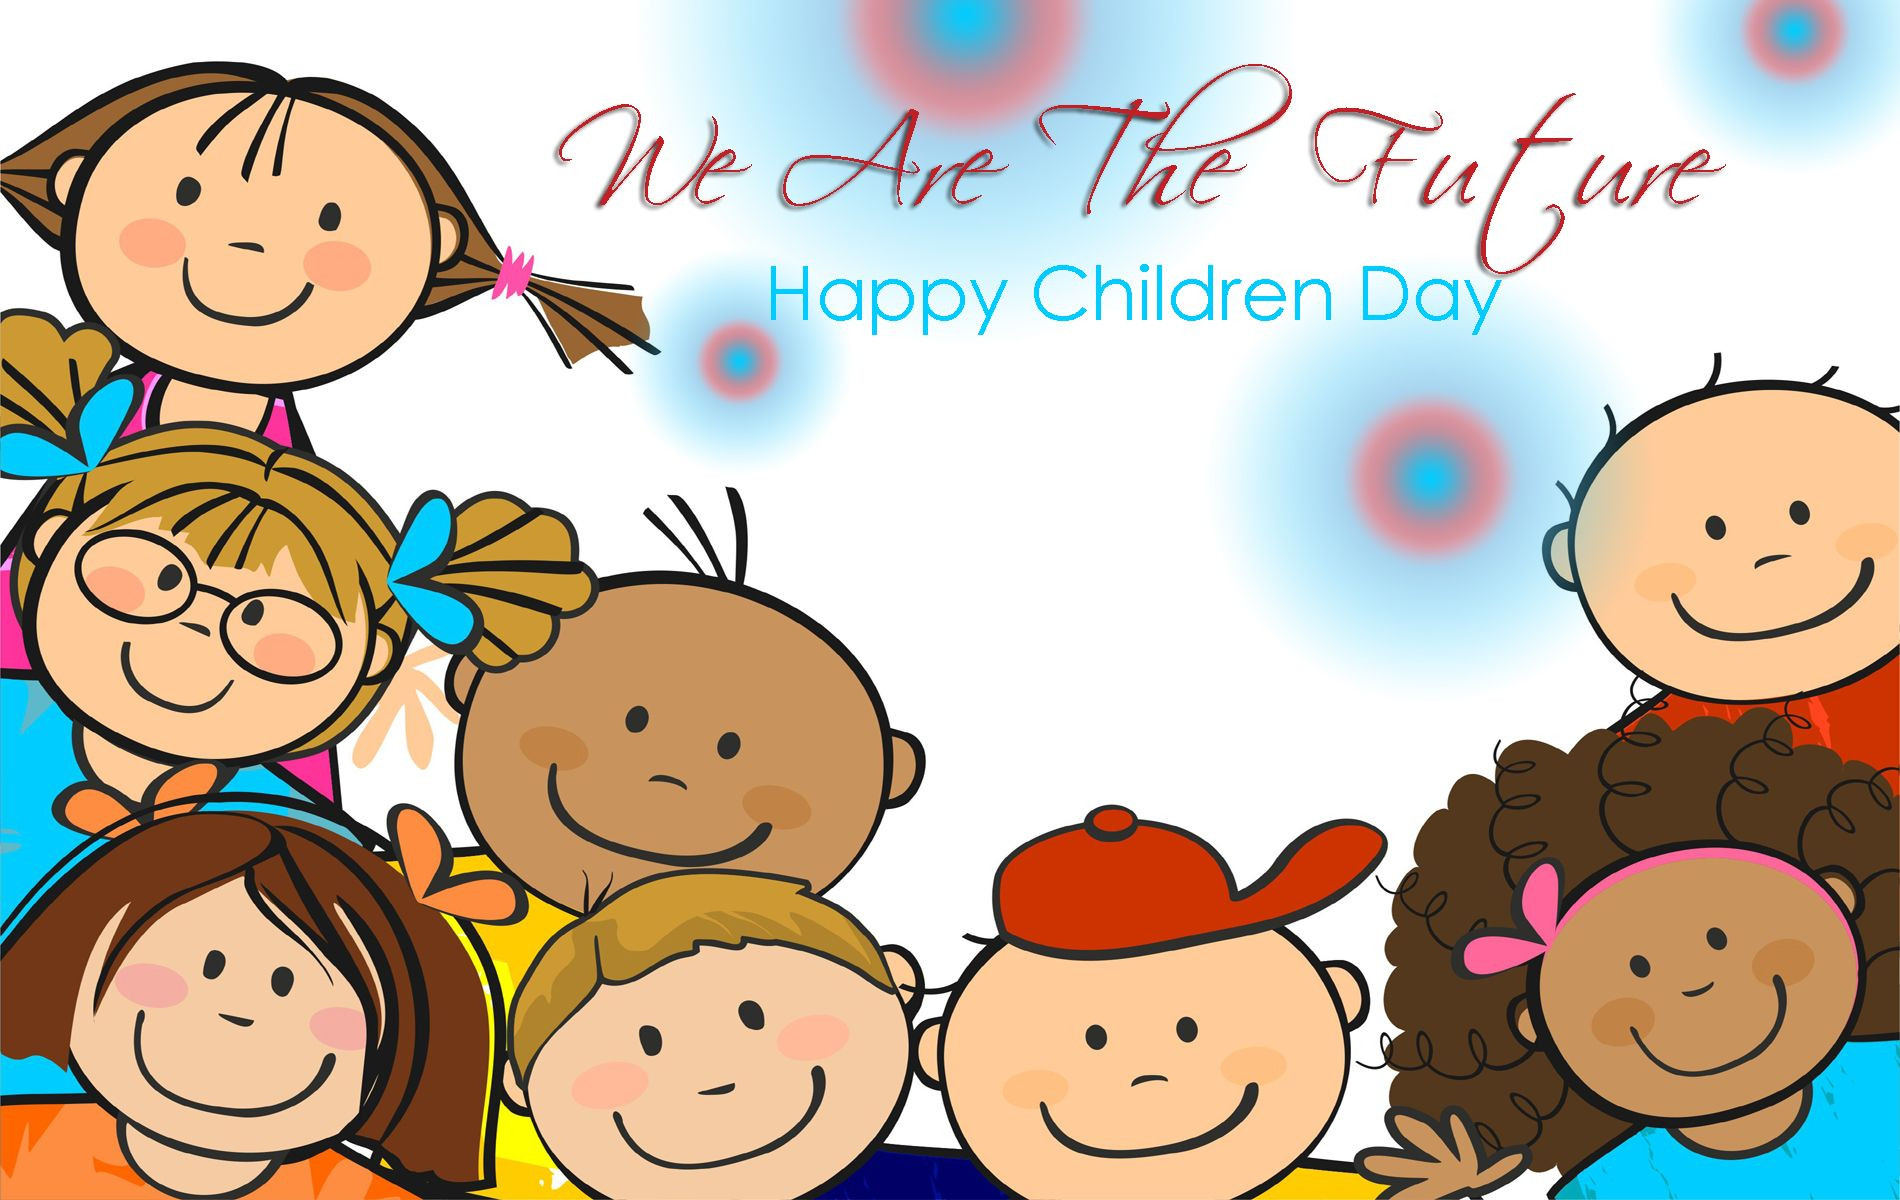 Happy Children's Day 2019